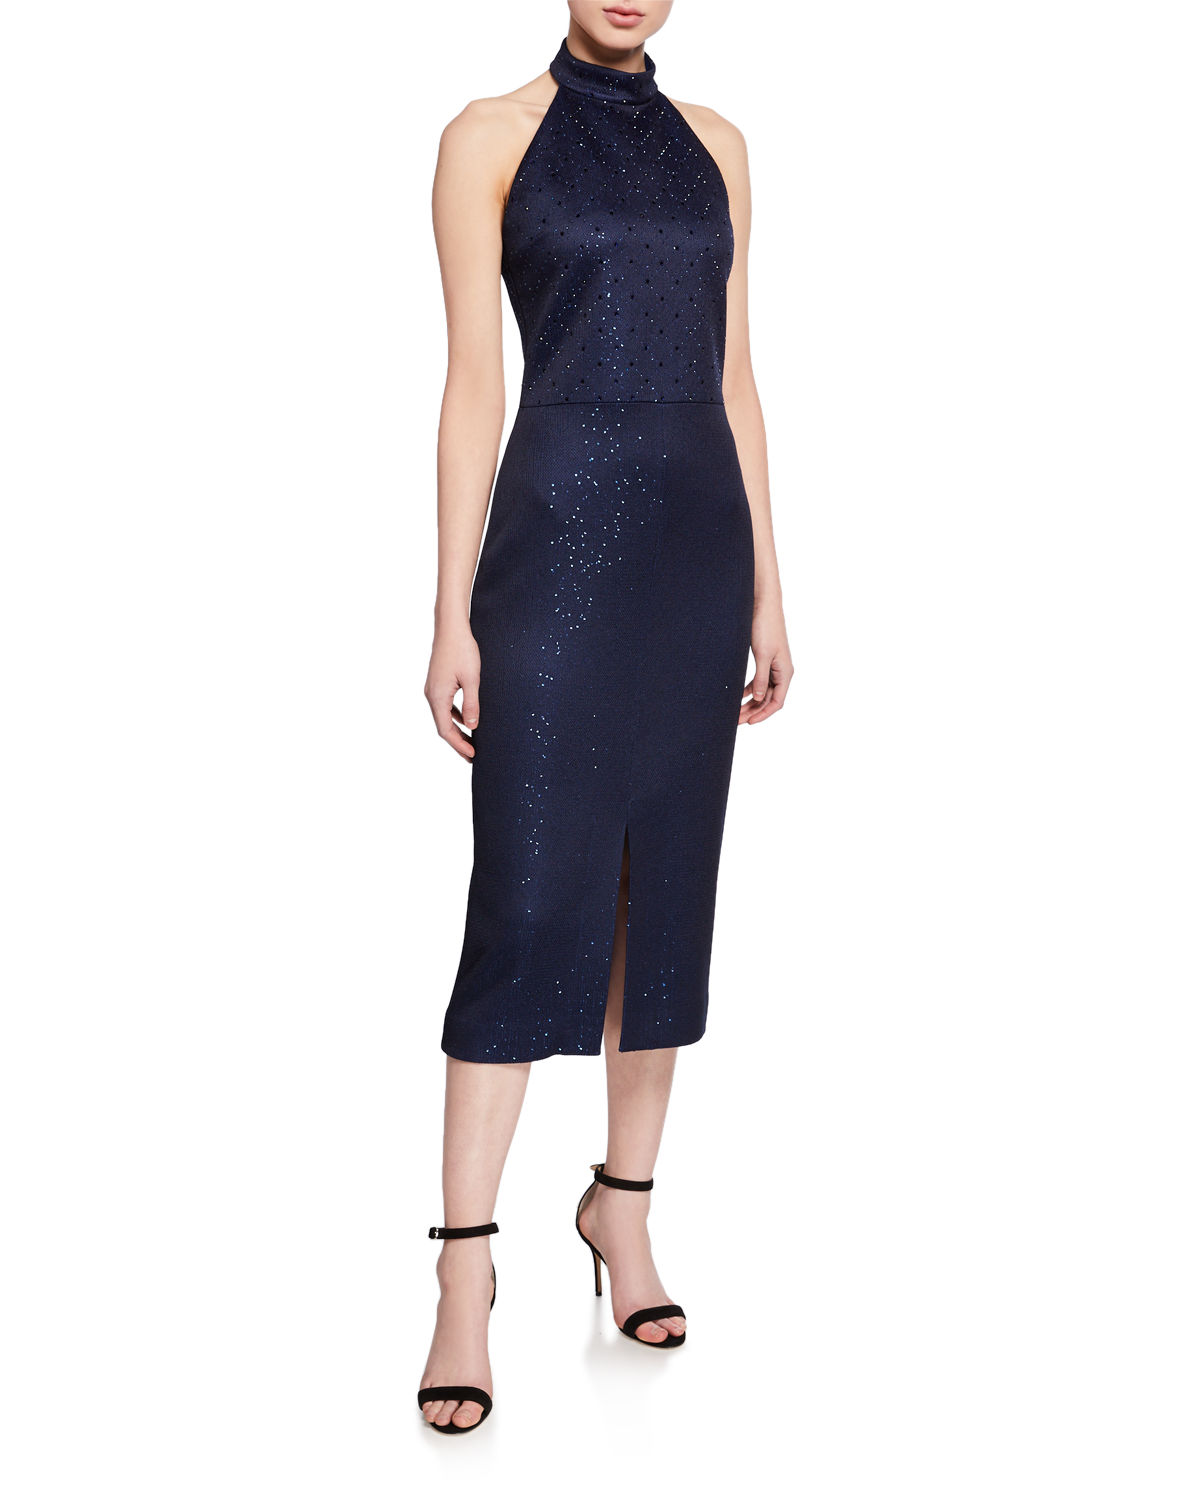 St. John Dresses SEQUIN BIRDSEYE HATER DRESS WITH FRONT SLIT